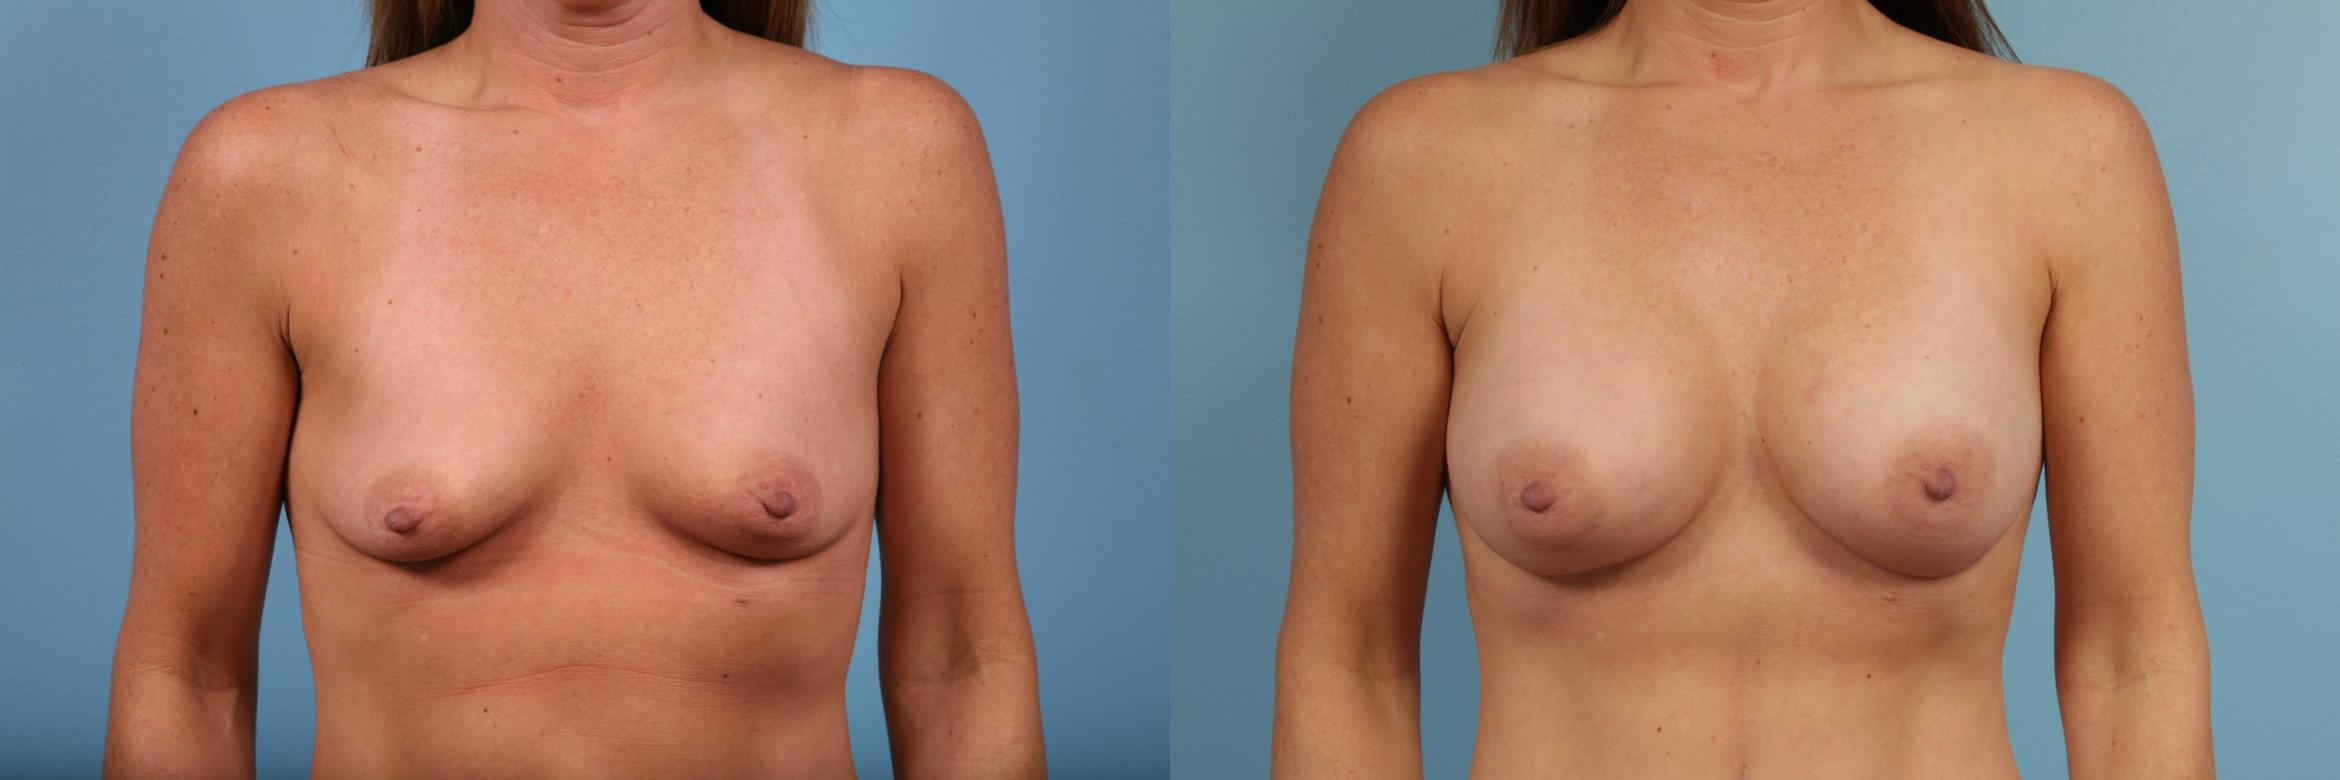 Breast Augmentation Case 102 Before & After View #1 | Chicago, IL | TLKM Plastic Surgery